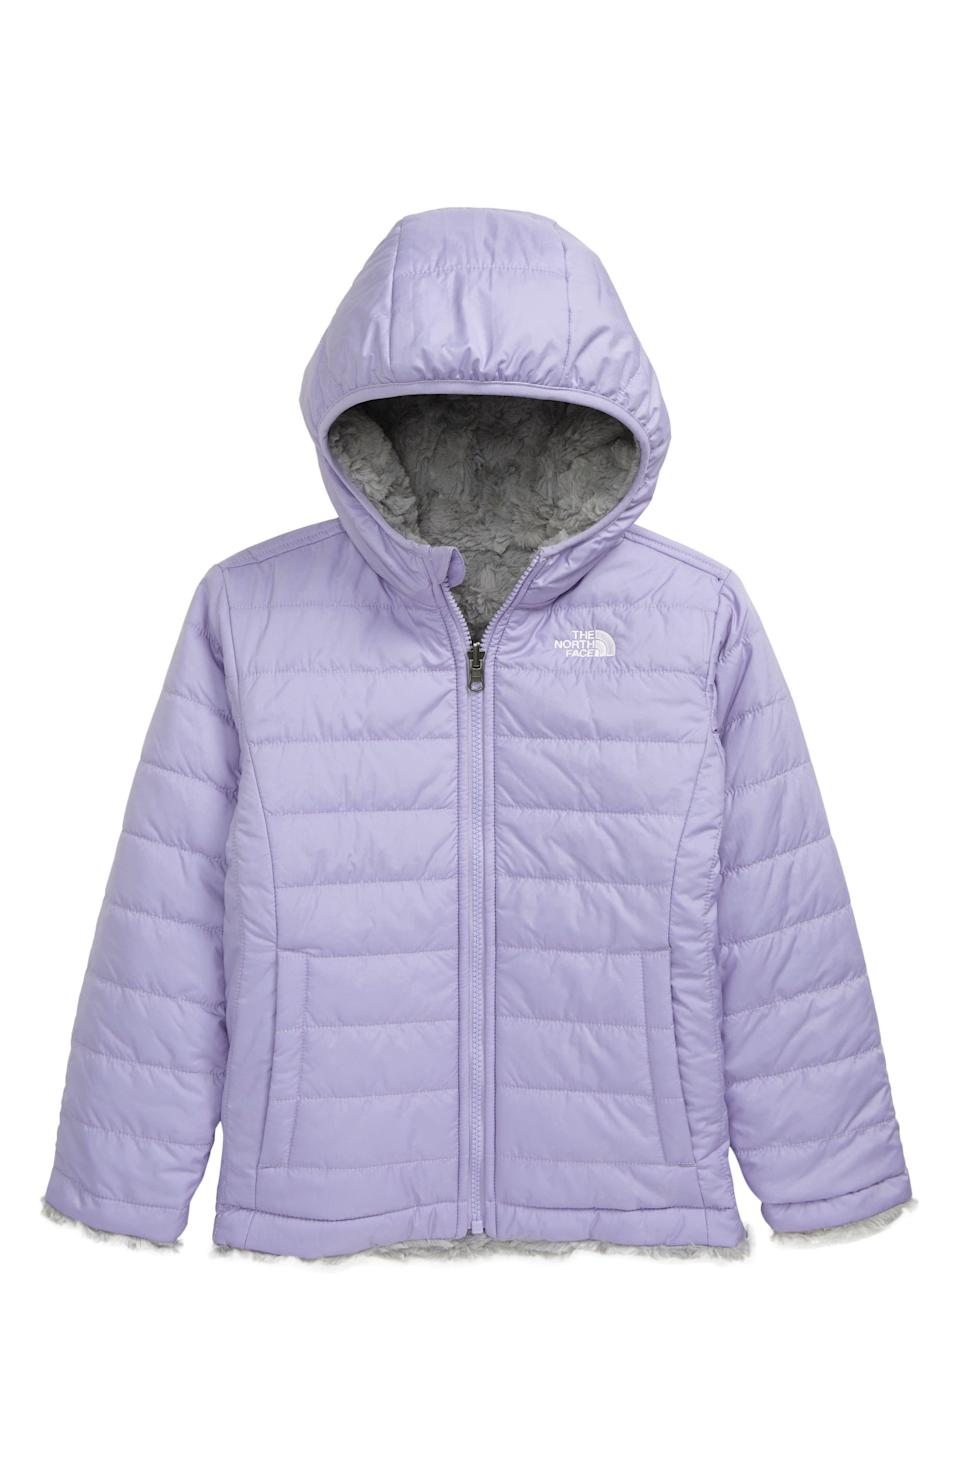 "<p><strong>THE NORTH FACE</strong></p><p>nordstrom.com</p><p><strong>$63.00</strong></p><p><a href=""https://go.redirectingat.com?id=74968X1596630&url=https%3A%2F%2Fwww.nordstrom.com%2Fs%2Fthe-north-face-kids-mossbud-swirl-reversible-water-repellent-jacket-toddler-little-girl%2F5531748&sref=https%3A%2F%2Fwww.redbookmag.com%2Flife%2Fg34811477%2Fblack-friday-cyber-monday-baby-deals-2020%2F"" rel=""nofollow noopener"" target=""_blank"" data-ylk=""slk:Shop Now"" class=""link rapid-noclick-resp"">Shop Now</a></p><p>Bundle up...</p>"